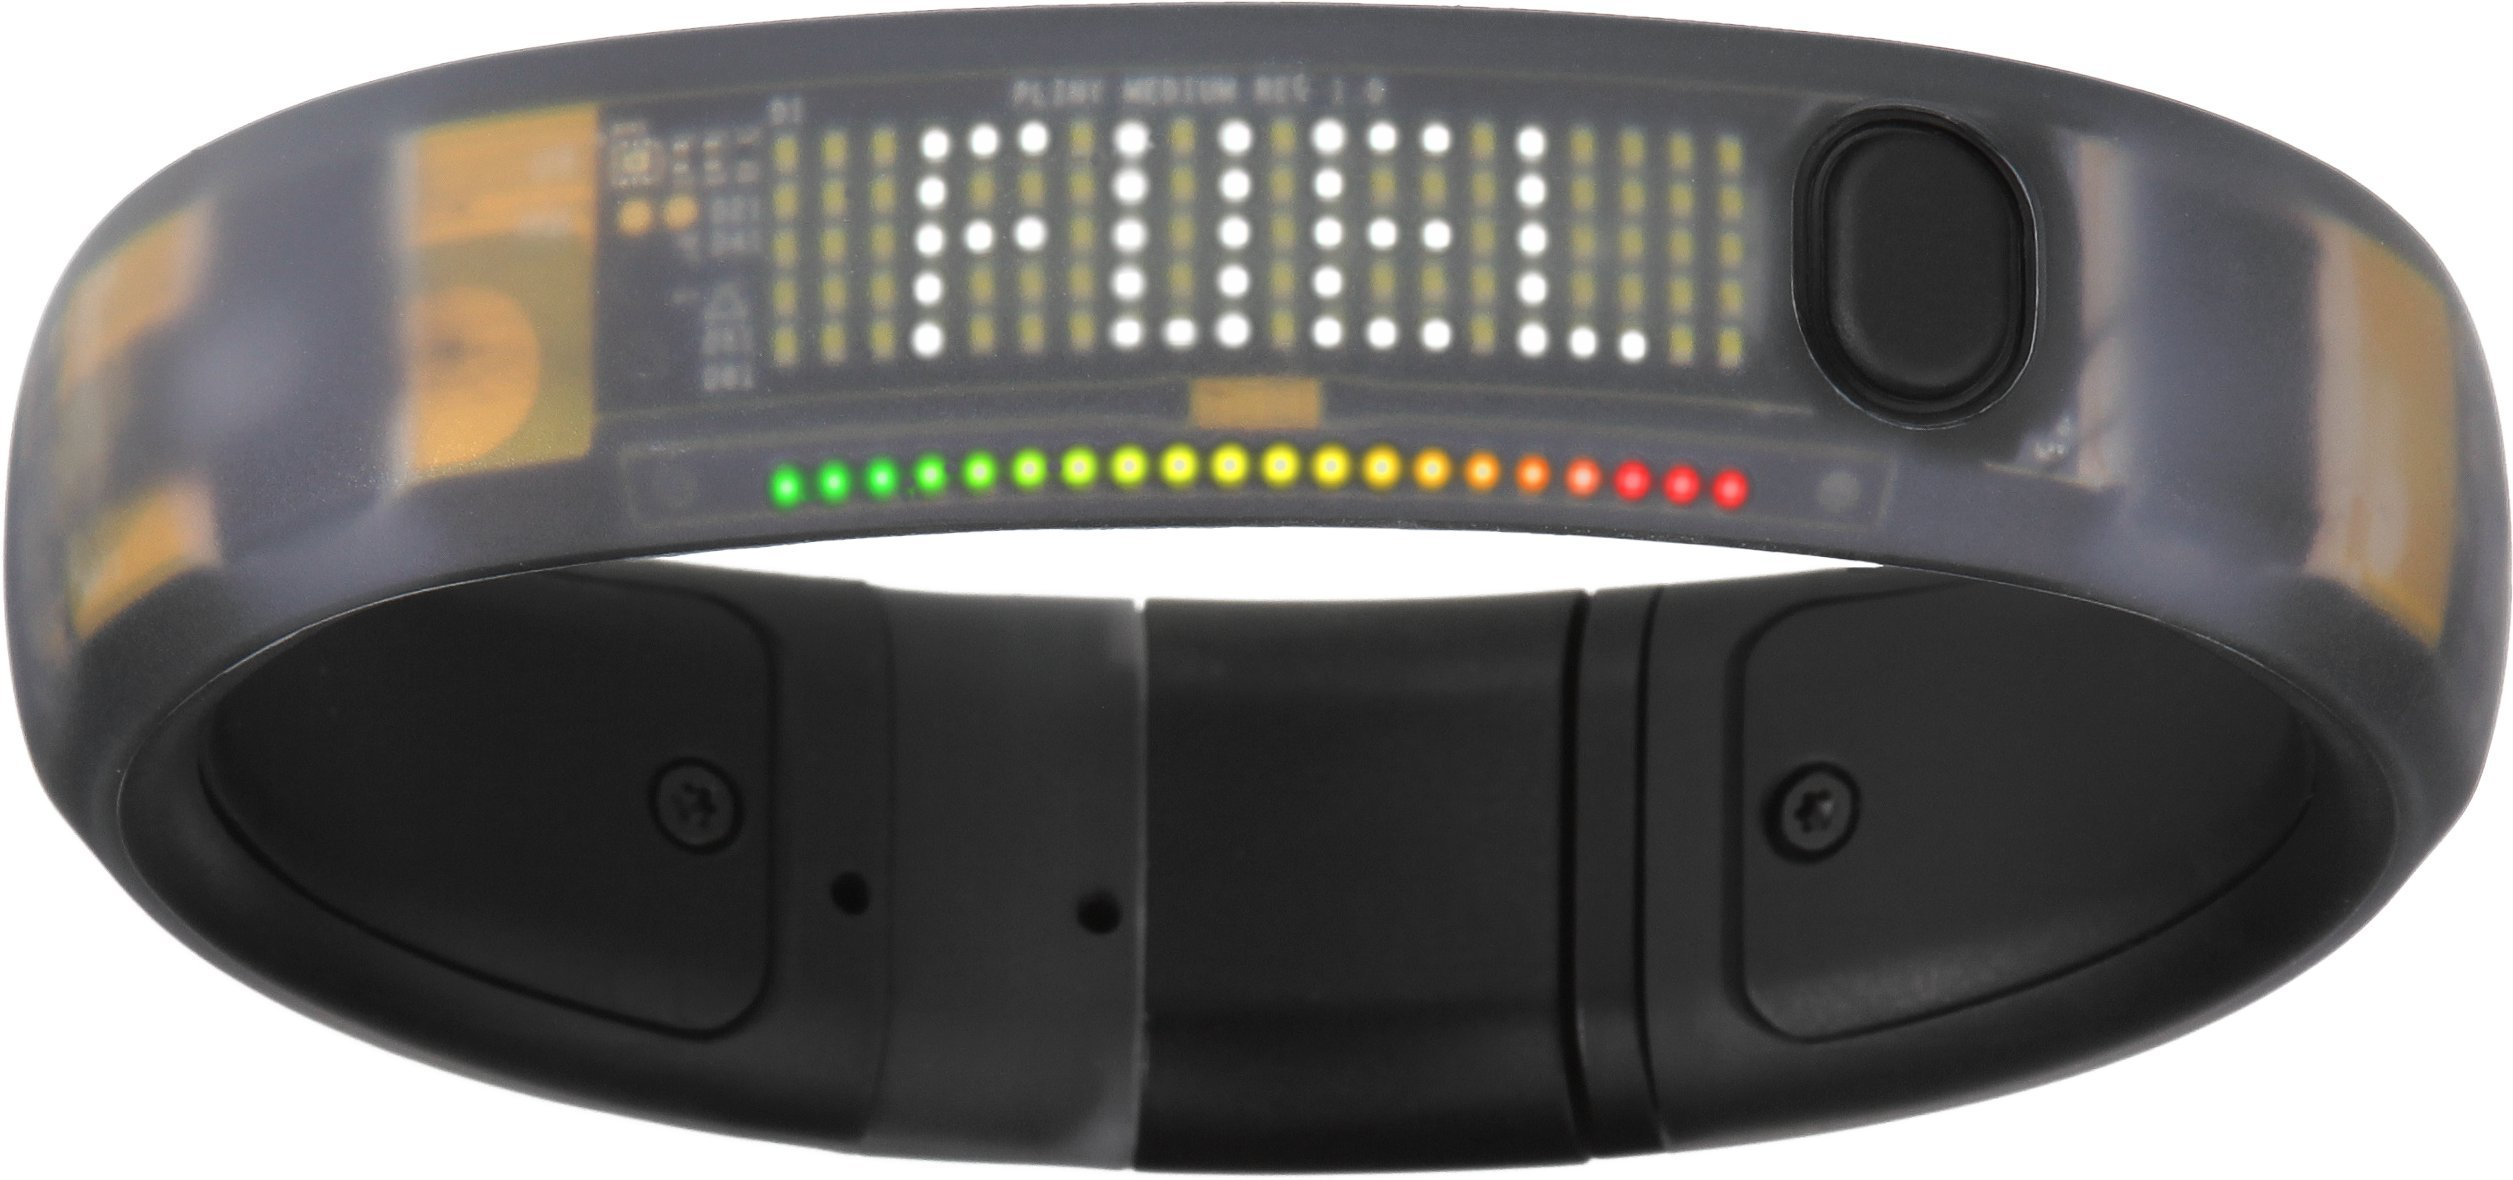 Nike+ FuelBand Black Ice X-Large